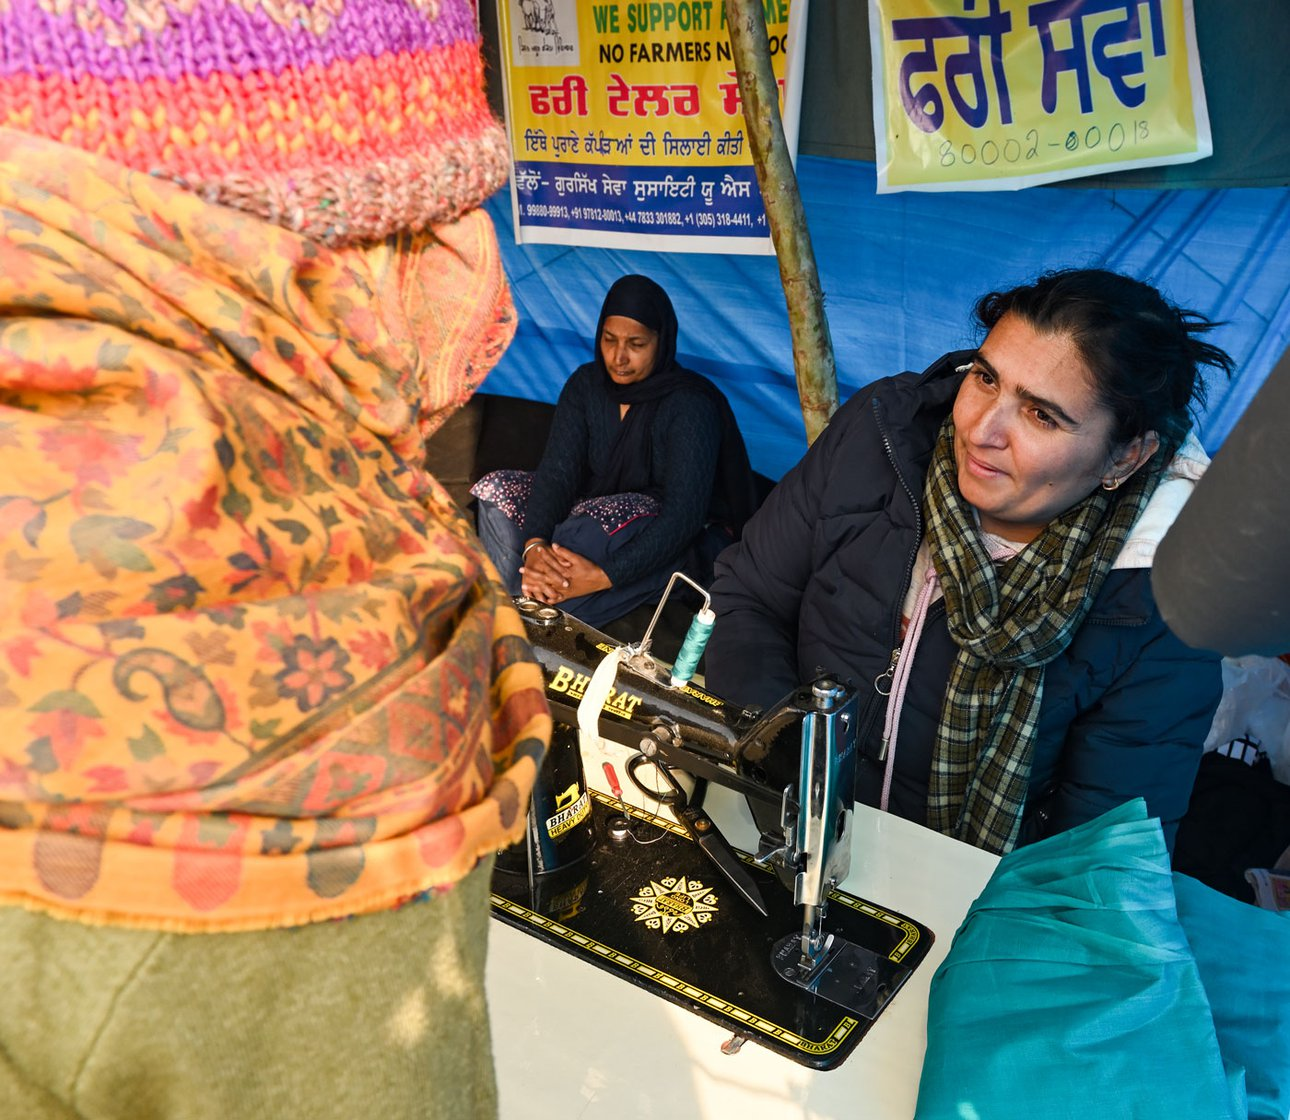 Kamaljit Kaur, a teacher from Ludhiana, and her colleagues have brought two sewing machines to Singhu, and fix for free missing shirt-buttons or tears in salwar-kameez outfits of the protesting farmers – as their form of solidarity